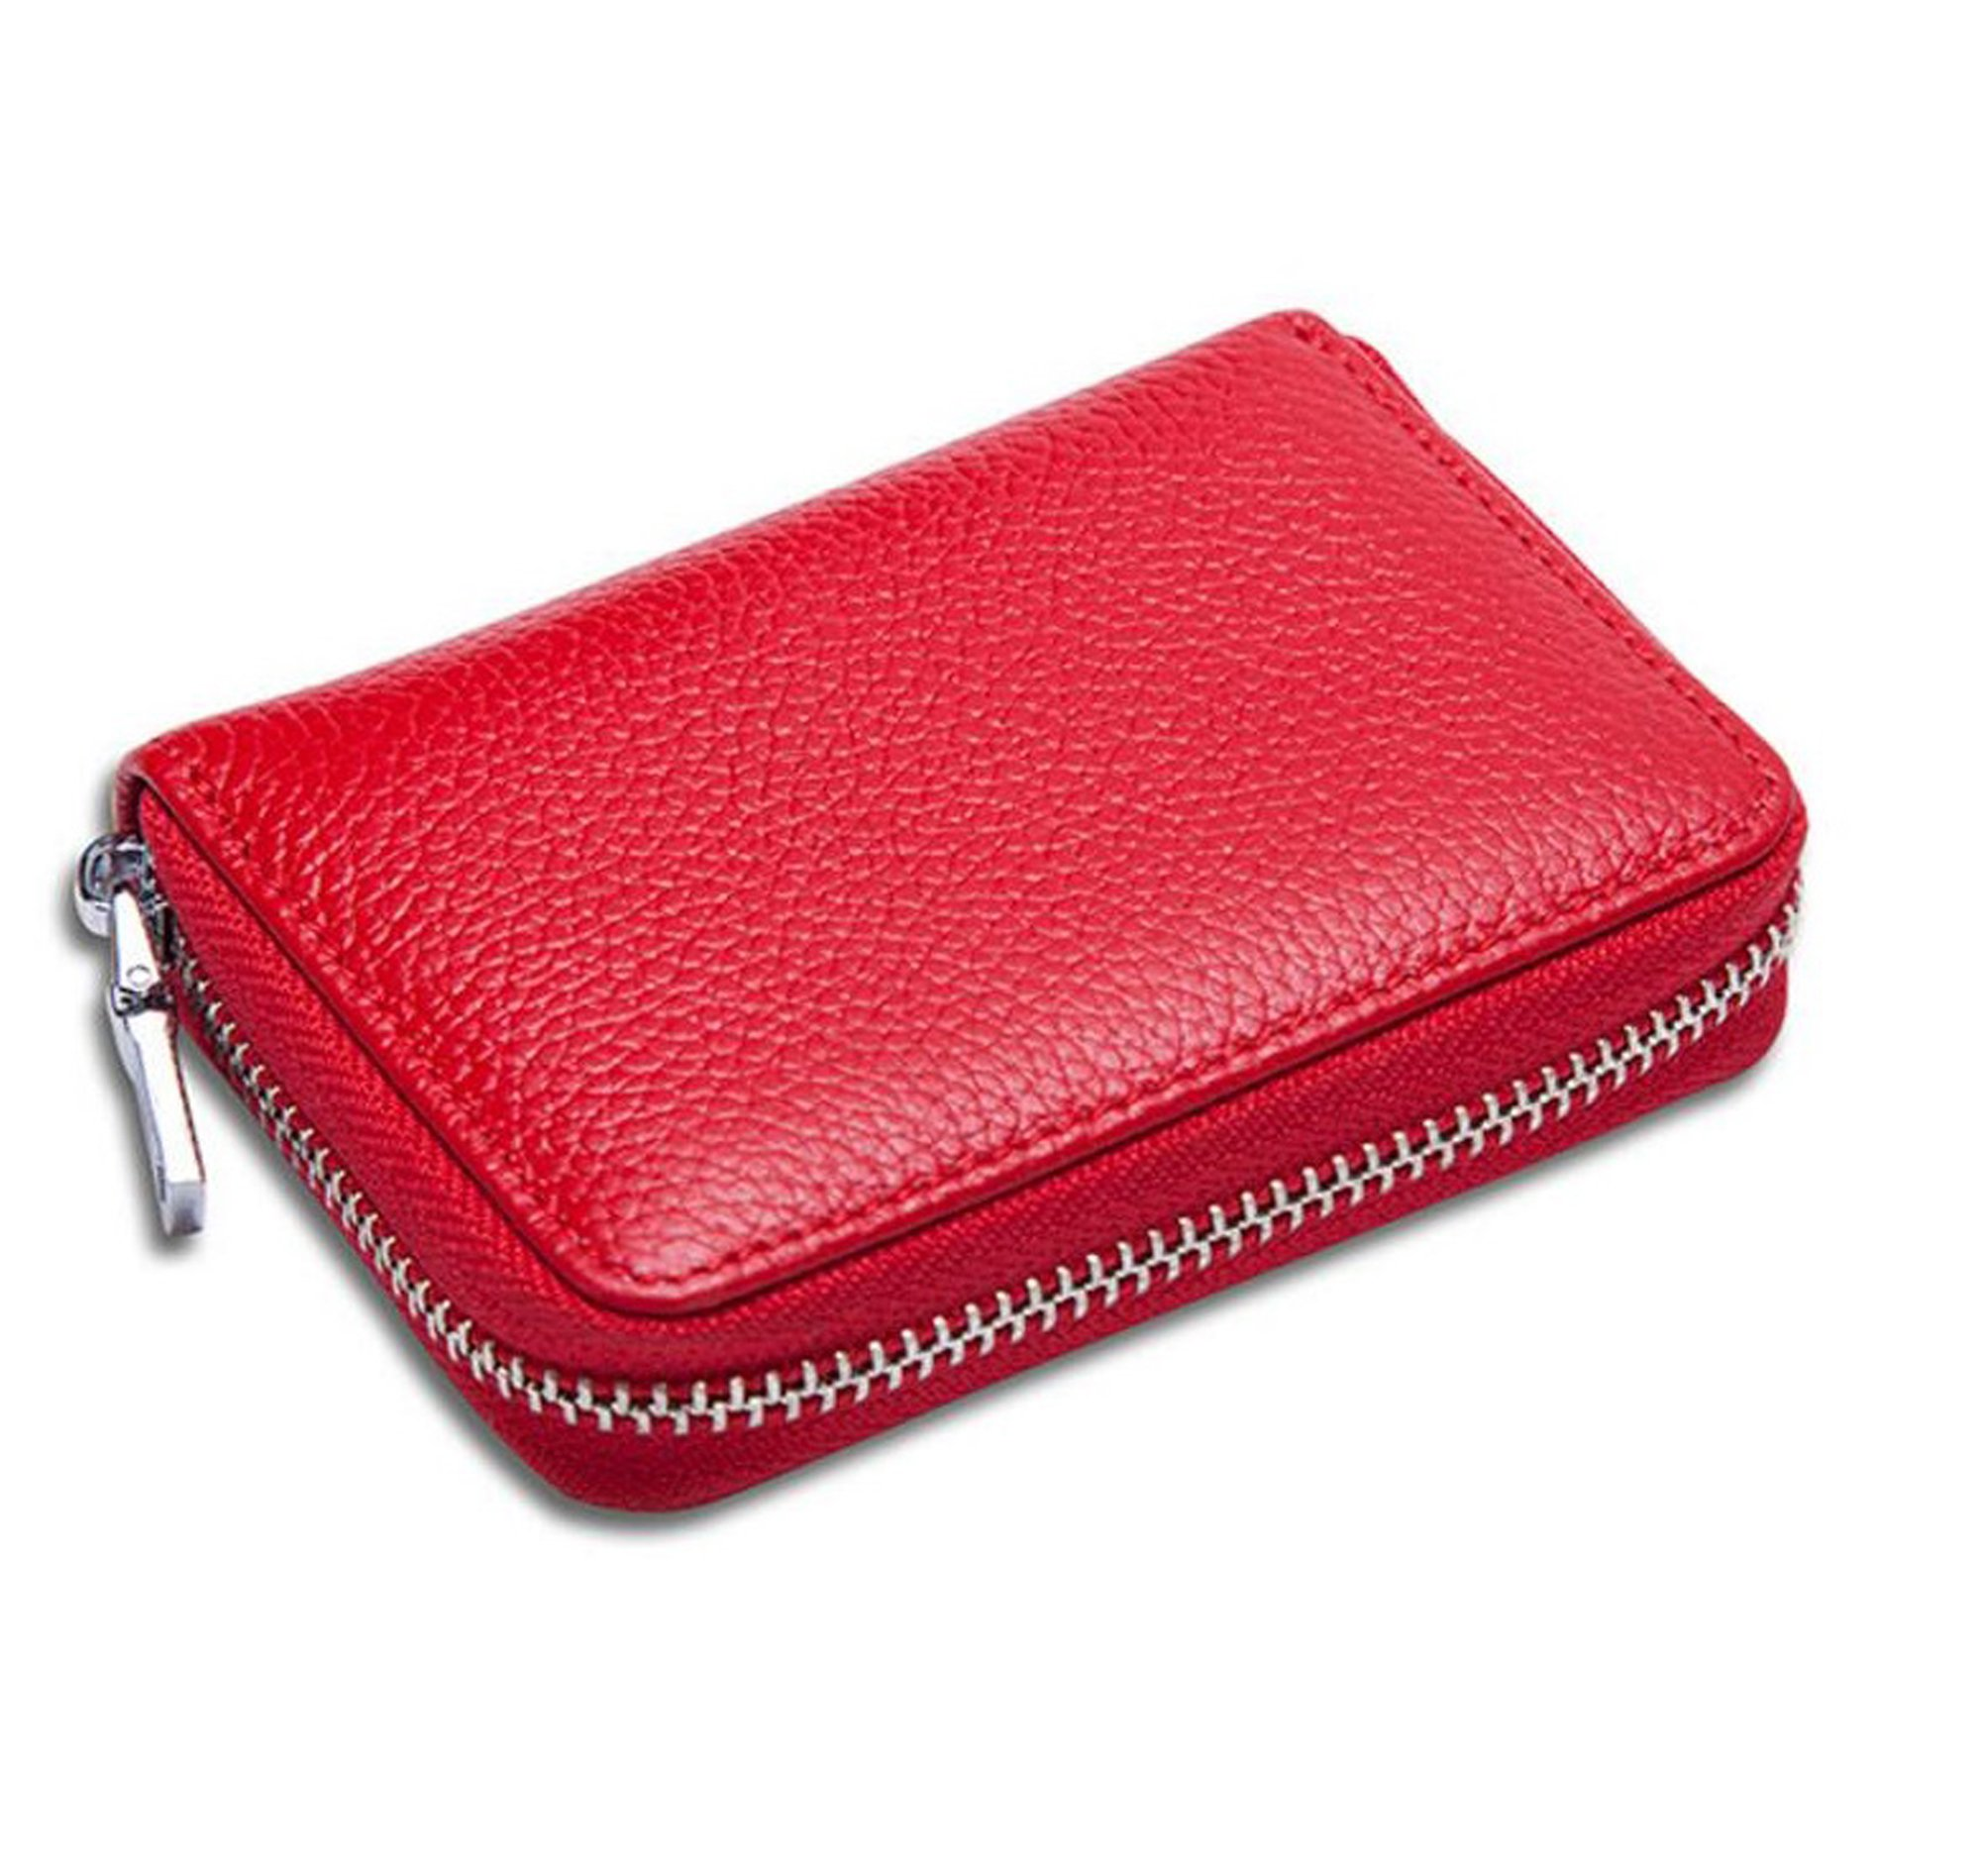 RFID Blocking Leather Credit Card Case Holder Security Small Accordion Wallet with Zipper(Red)